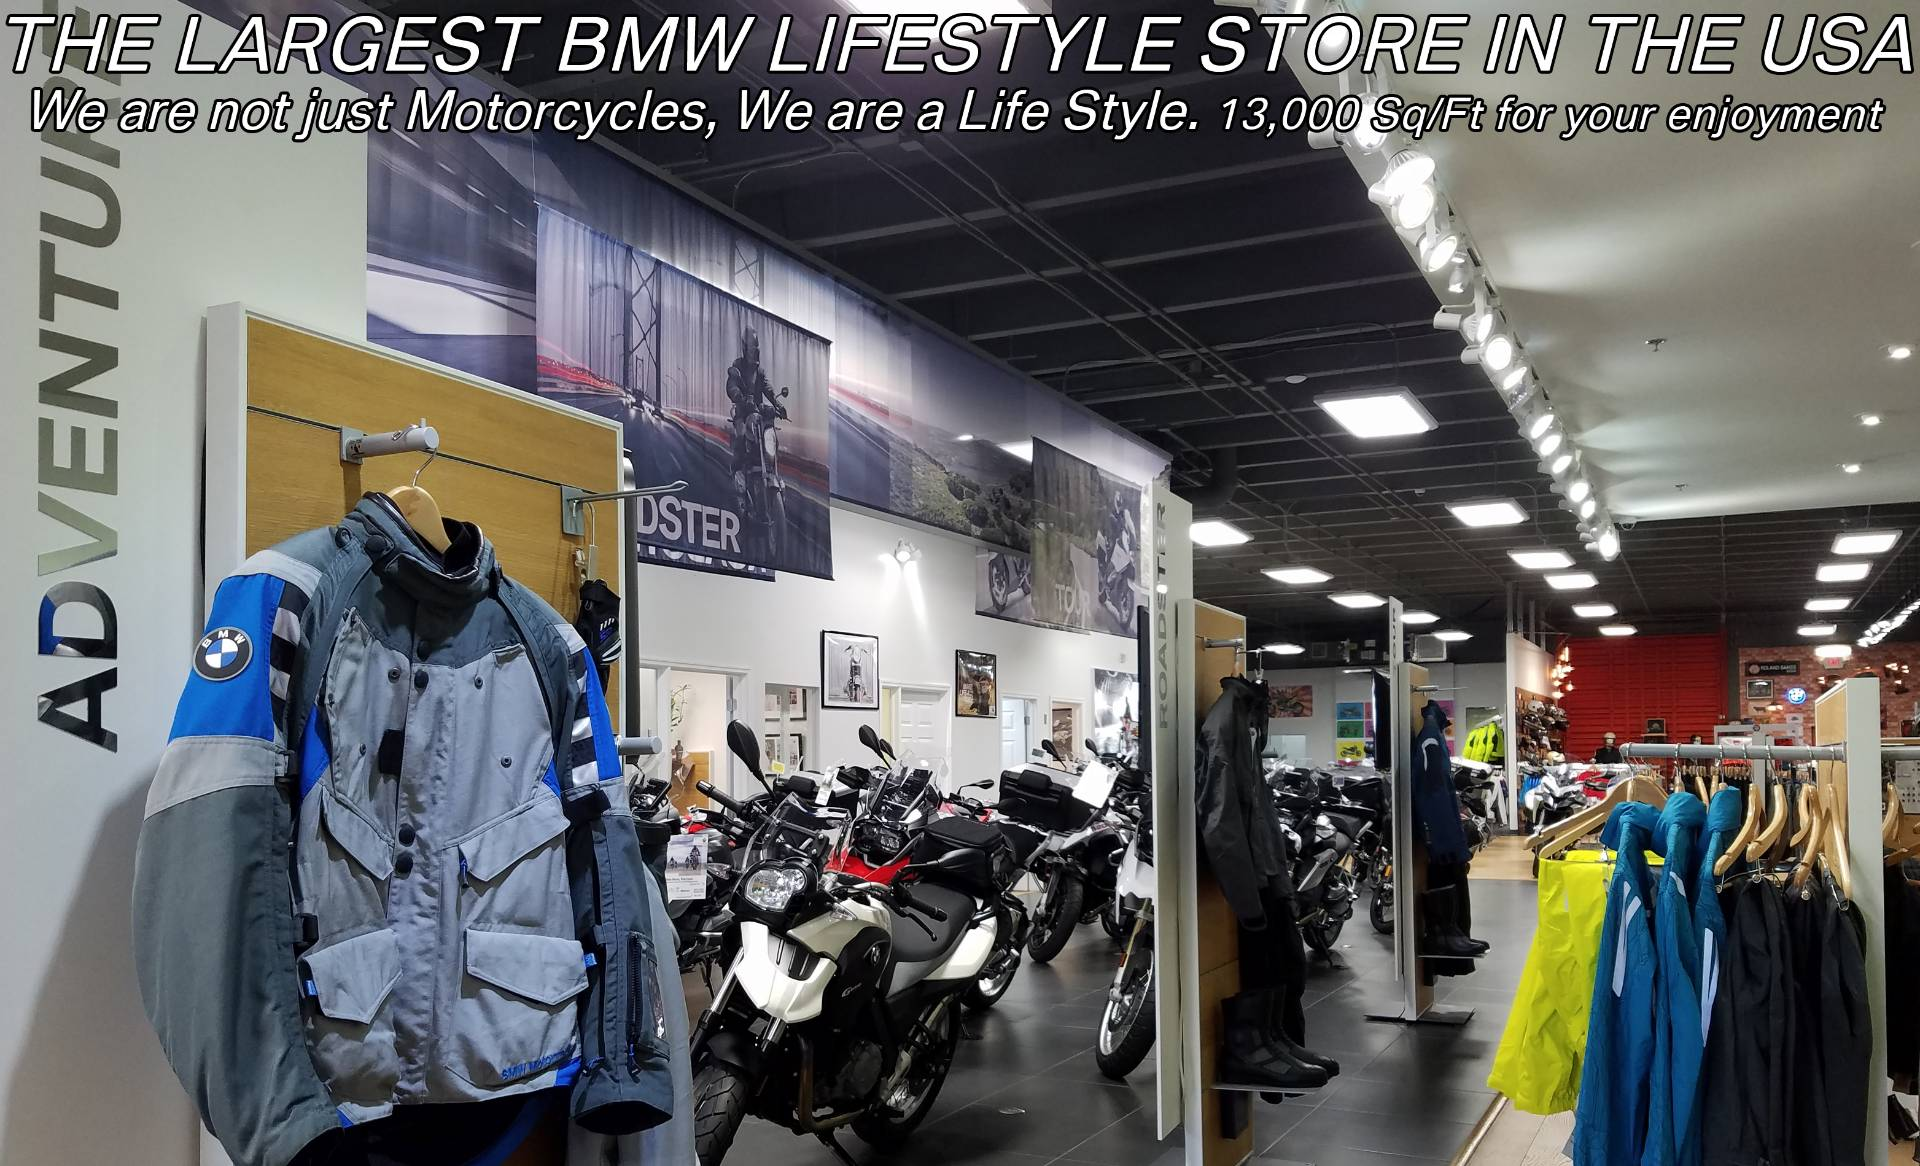 New 2017 BMW R nineT Brushed aluminum For Sale, BMW R nineT Brushed For Sale, BMW Motorcycle R nine T, new BMW RnineT, New BMW Motorcycle